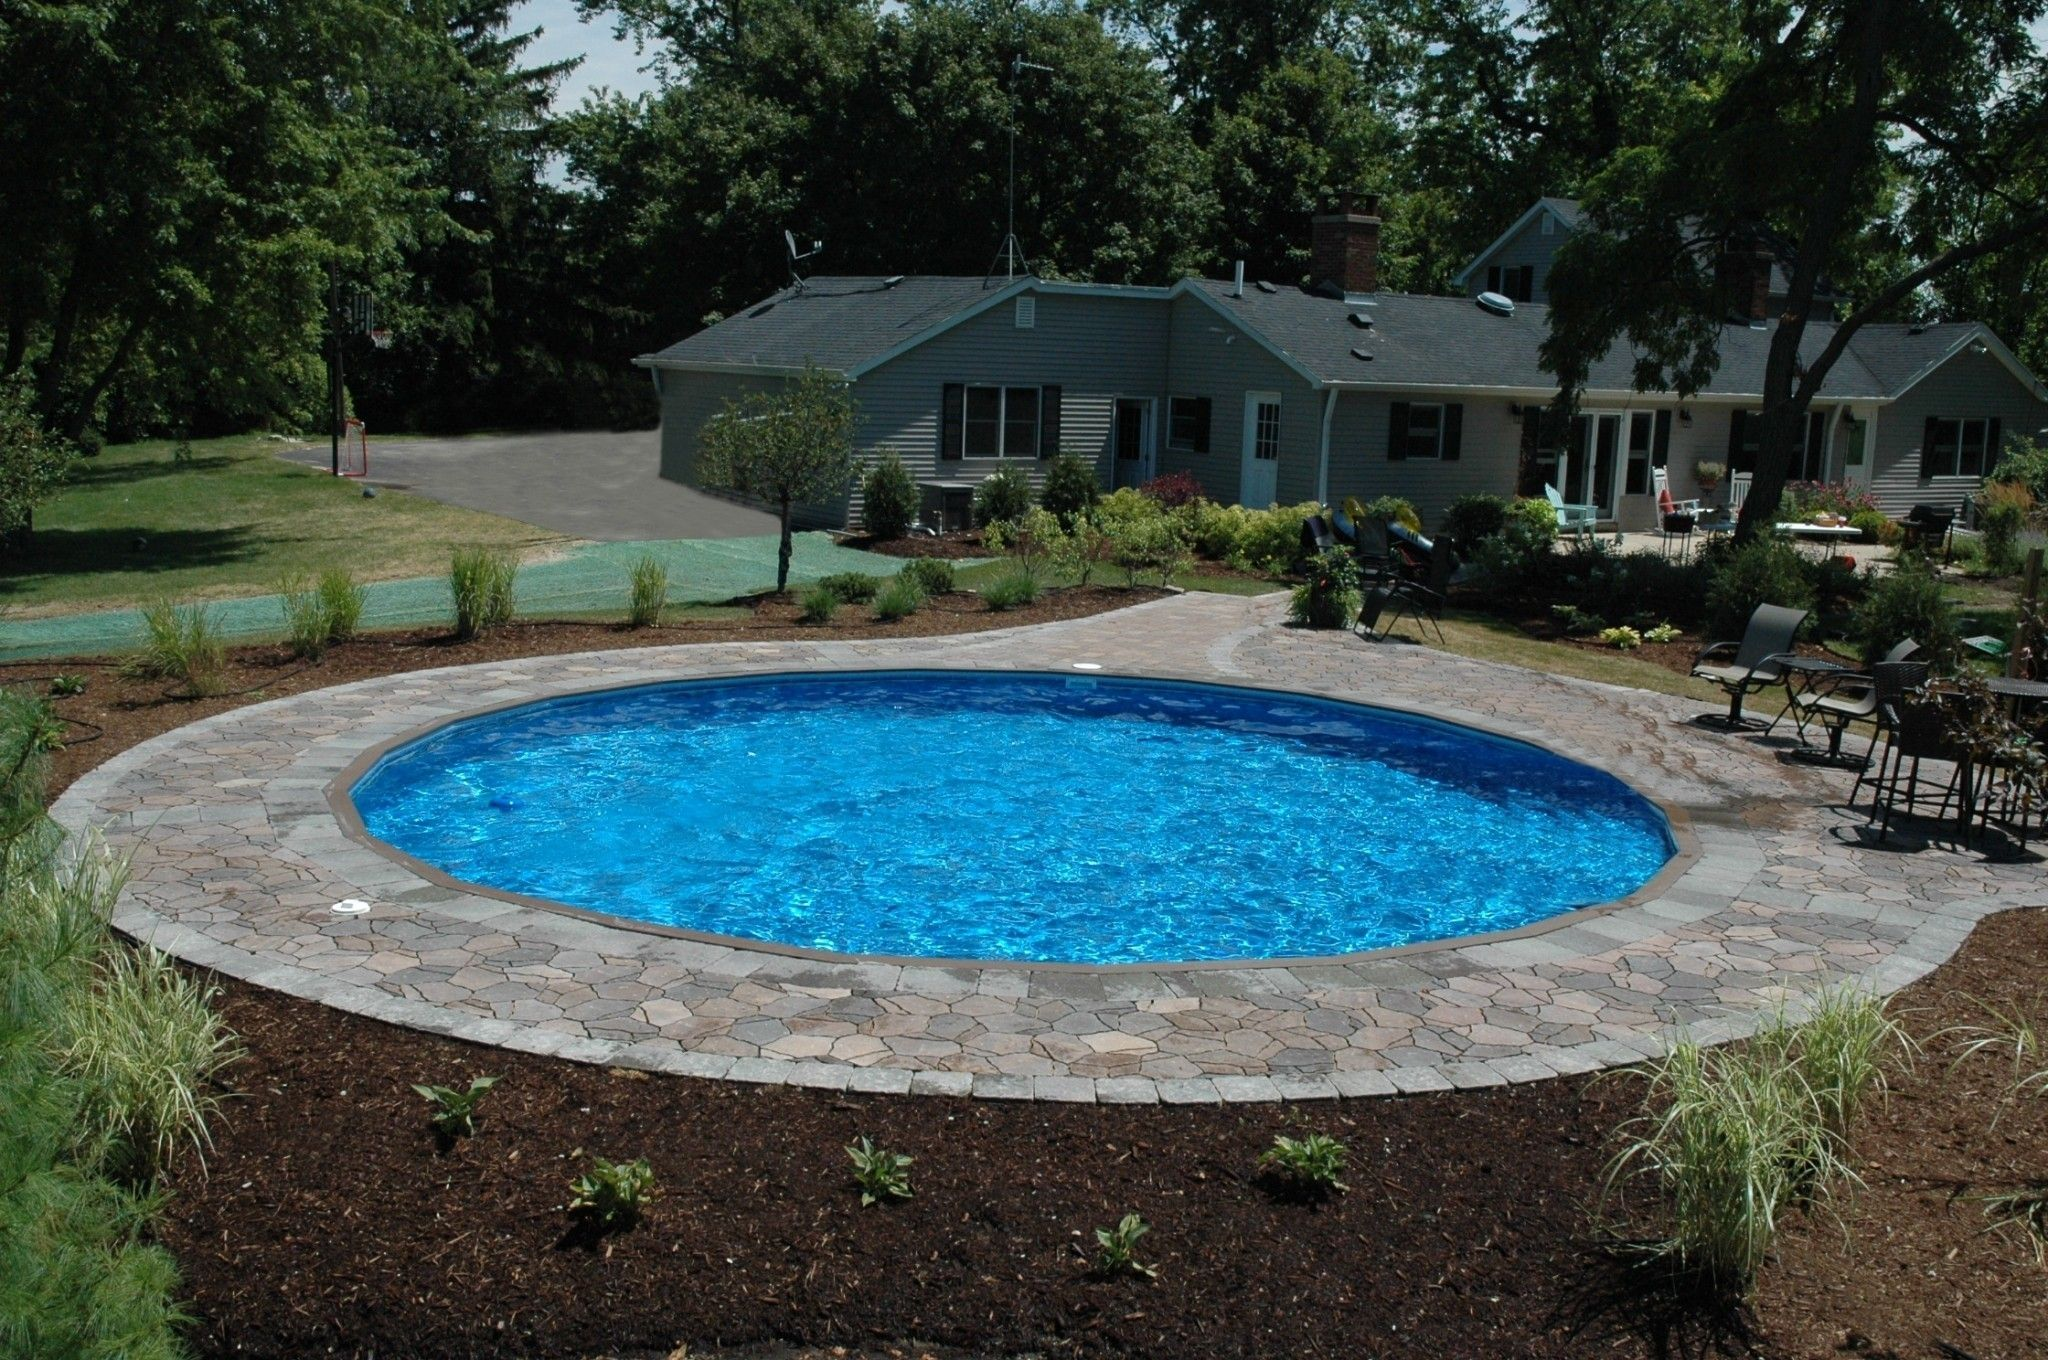 Gorgeous 30 A Round Swimming Pool With A Fountain Httpskindofdecorcomindexphp2018071930 A Round Swimming Pool